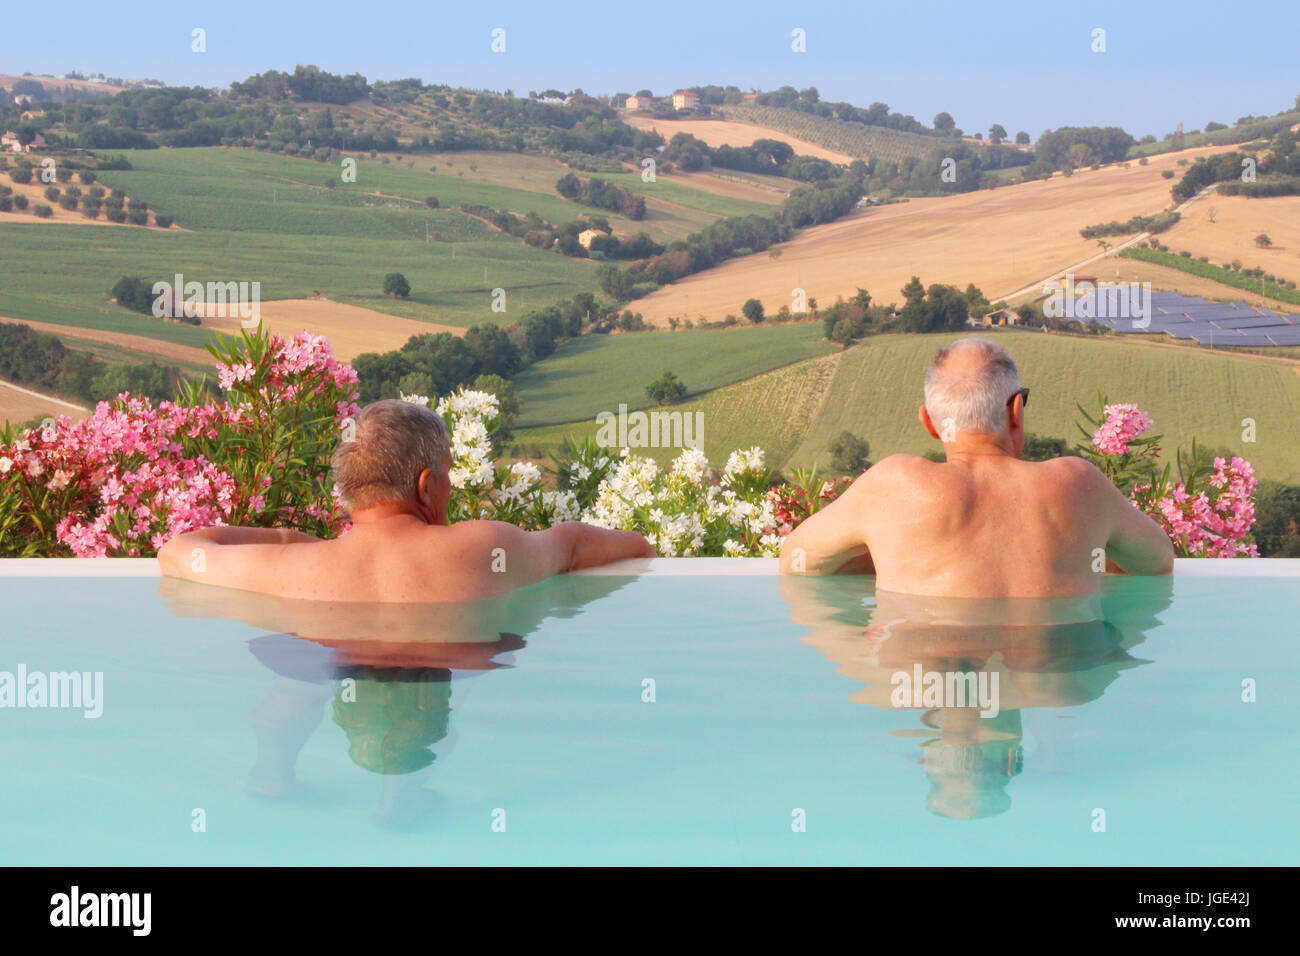 Mature men relaxing by the pool - Summer vacation - Stock Image